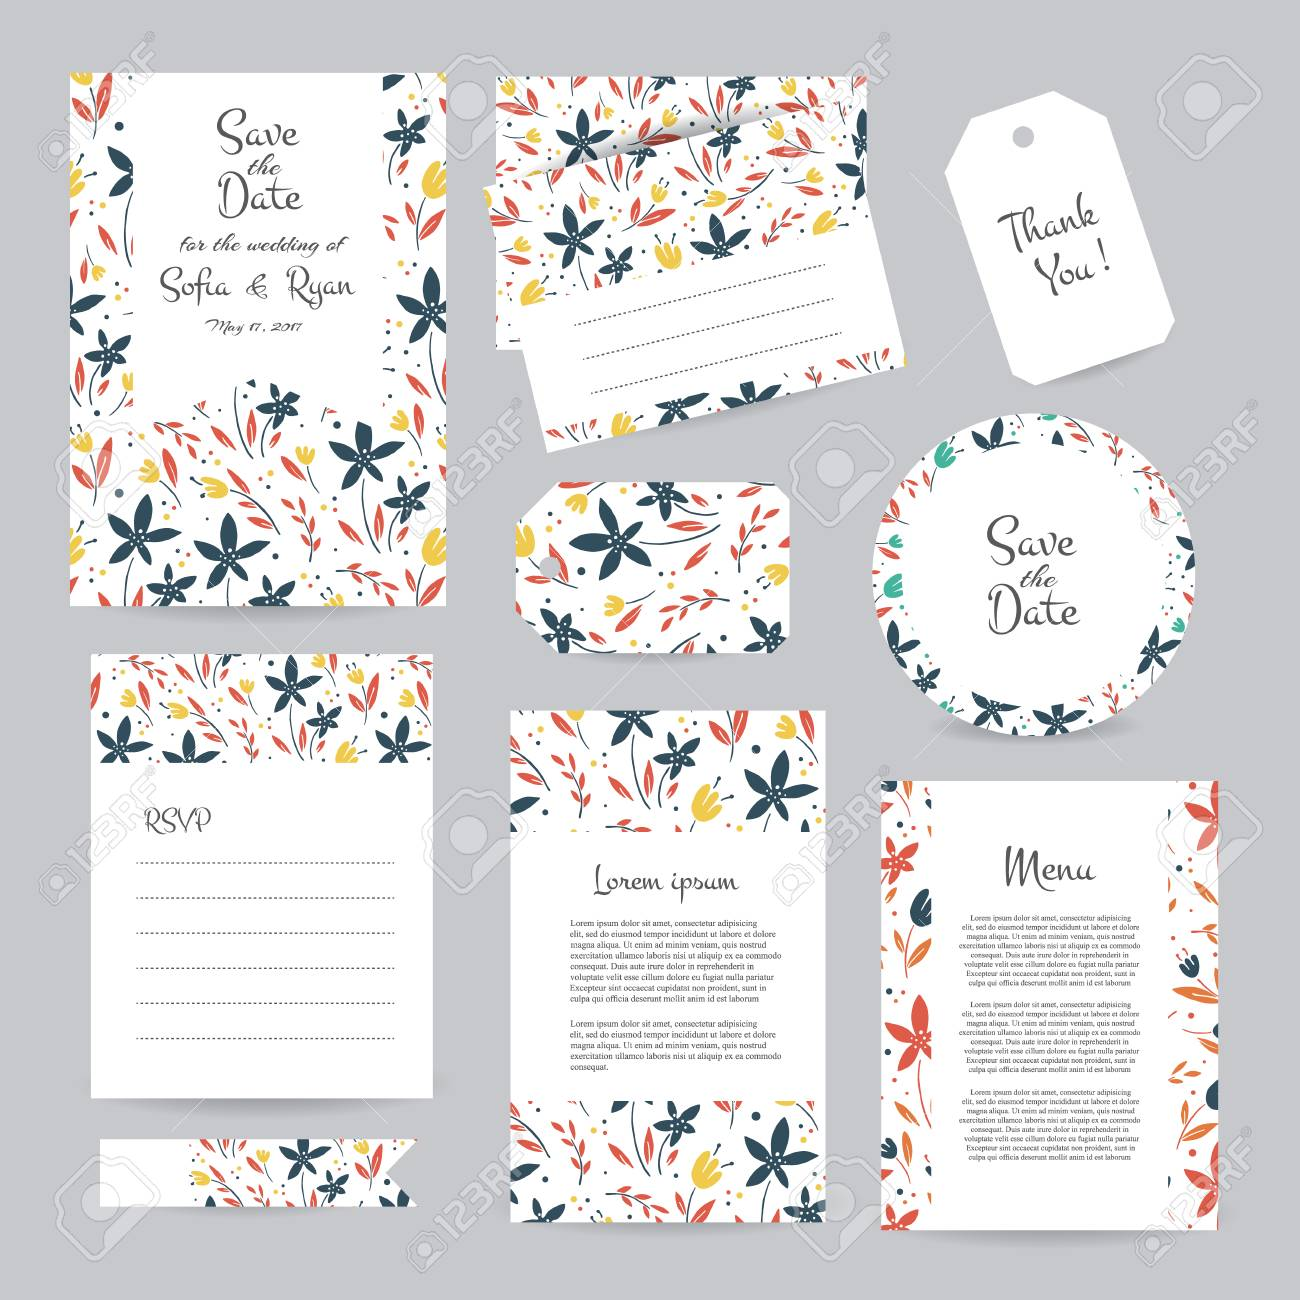 Vector Gentle Wedding Cards Template With Flower Design Wedding - Save the date wedding cards template free